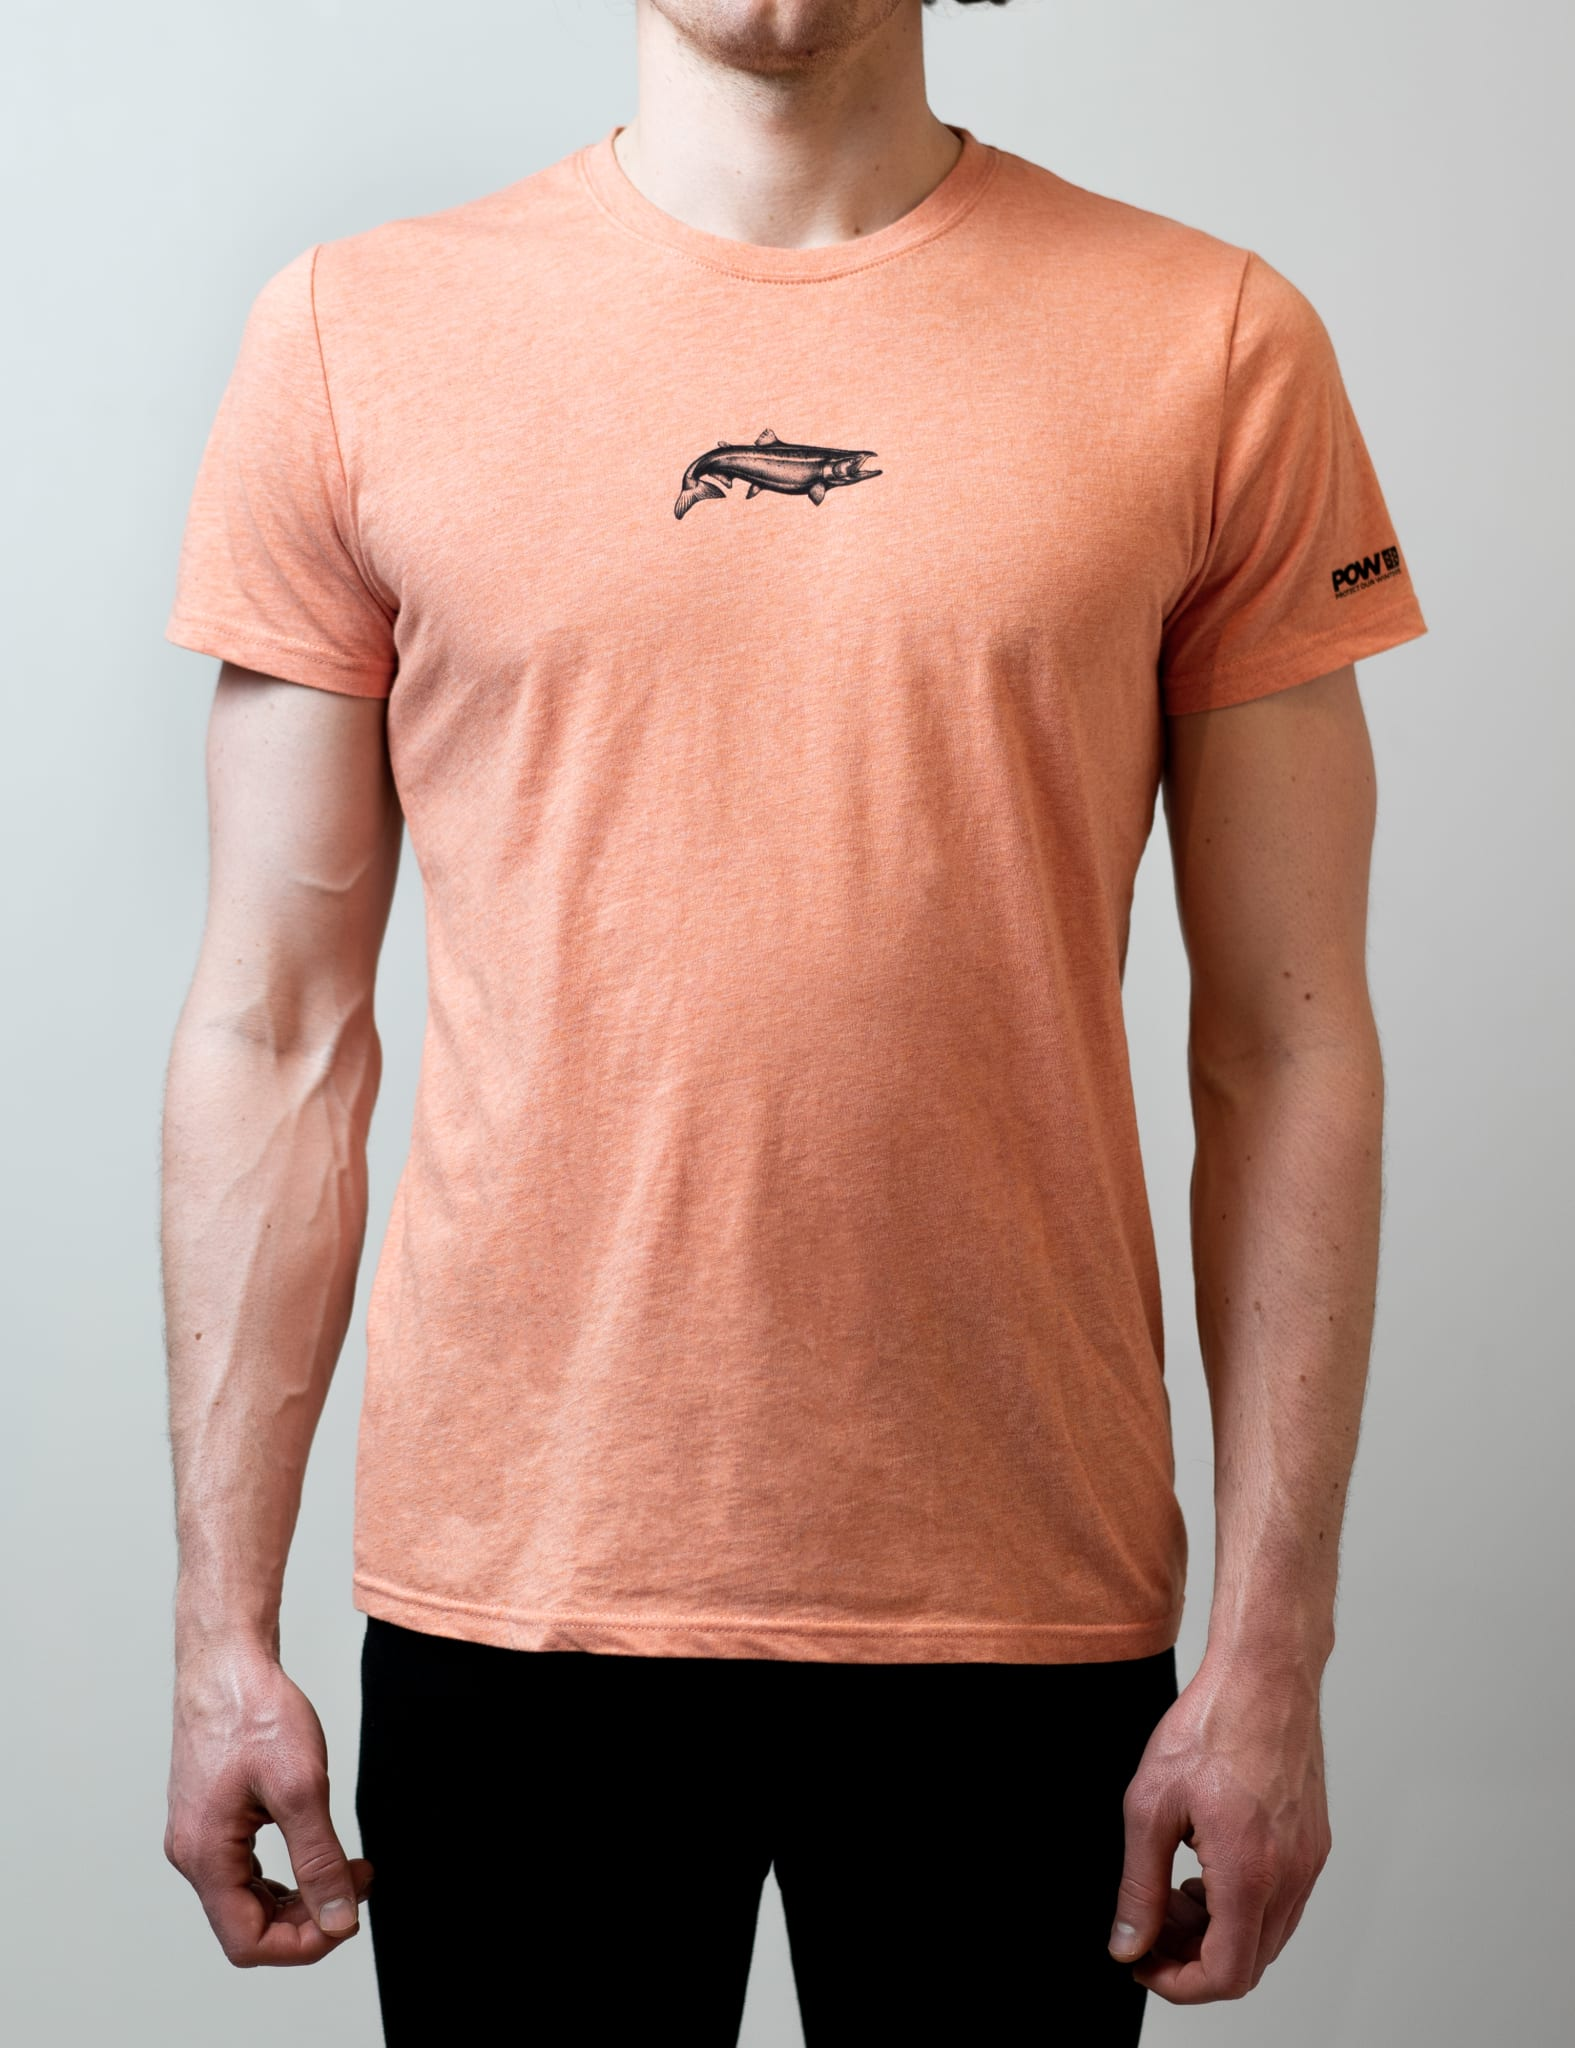 Super Hero Tee: The salmon